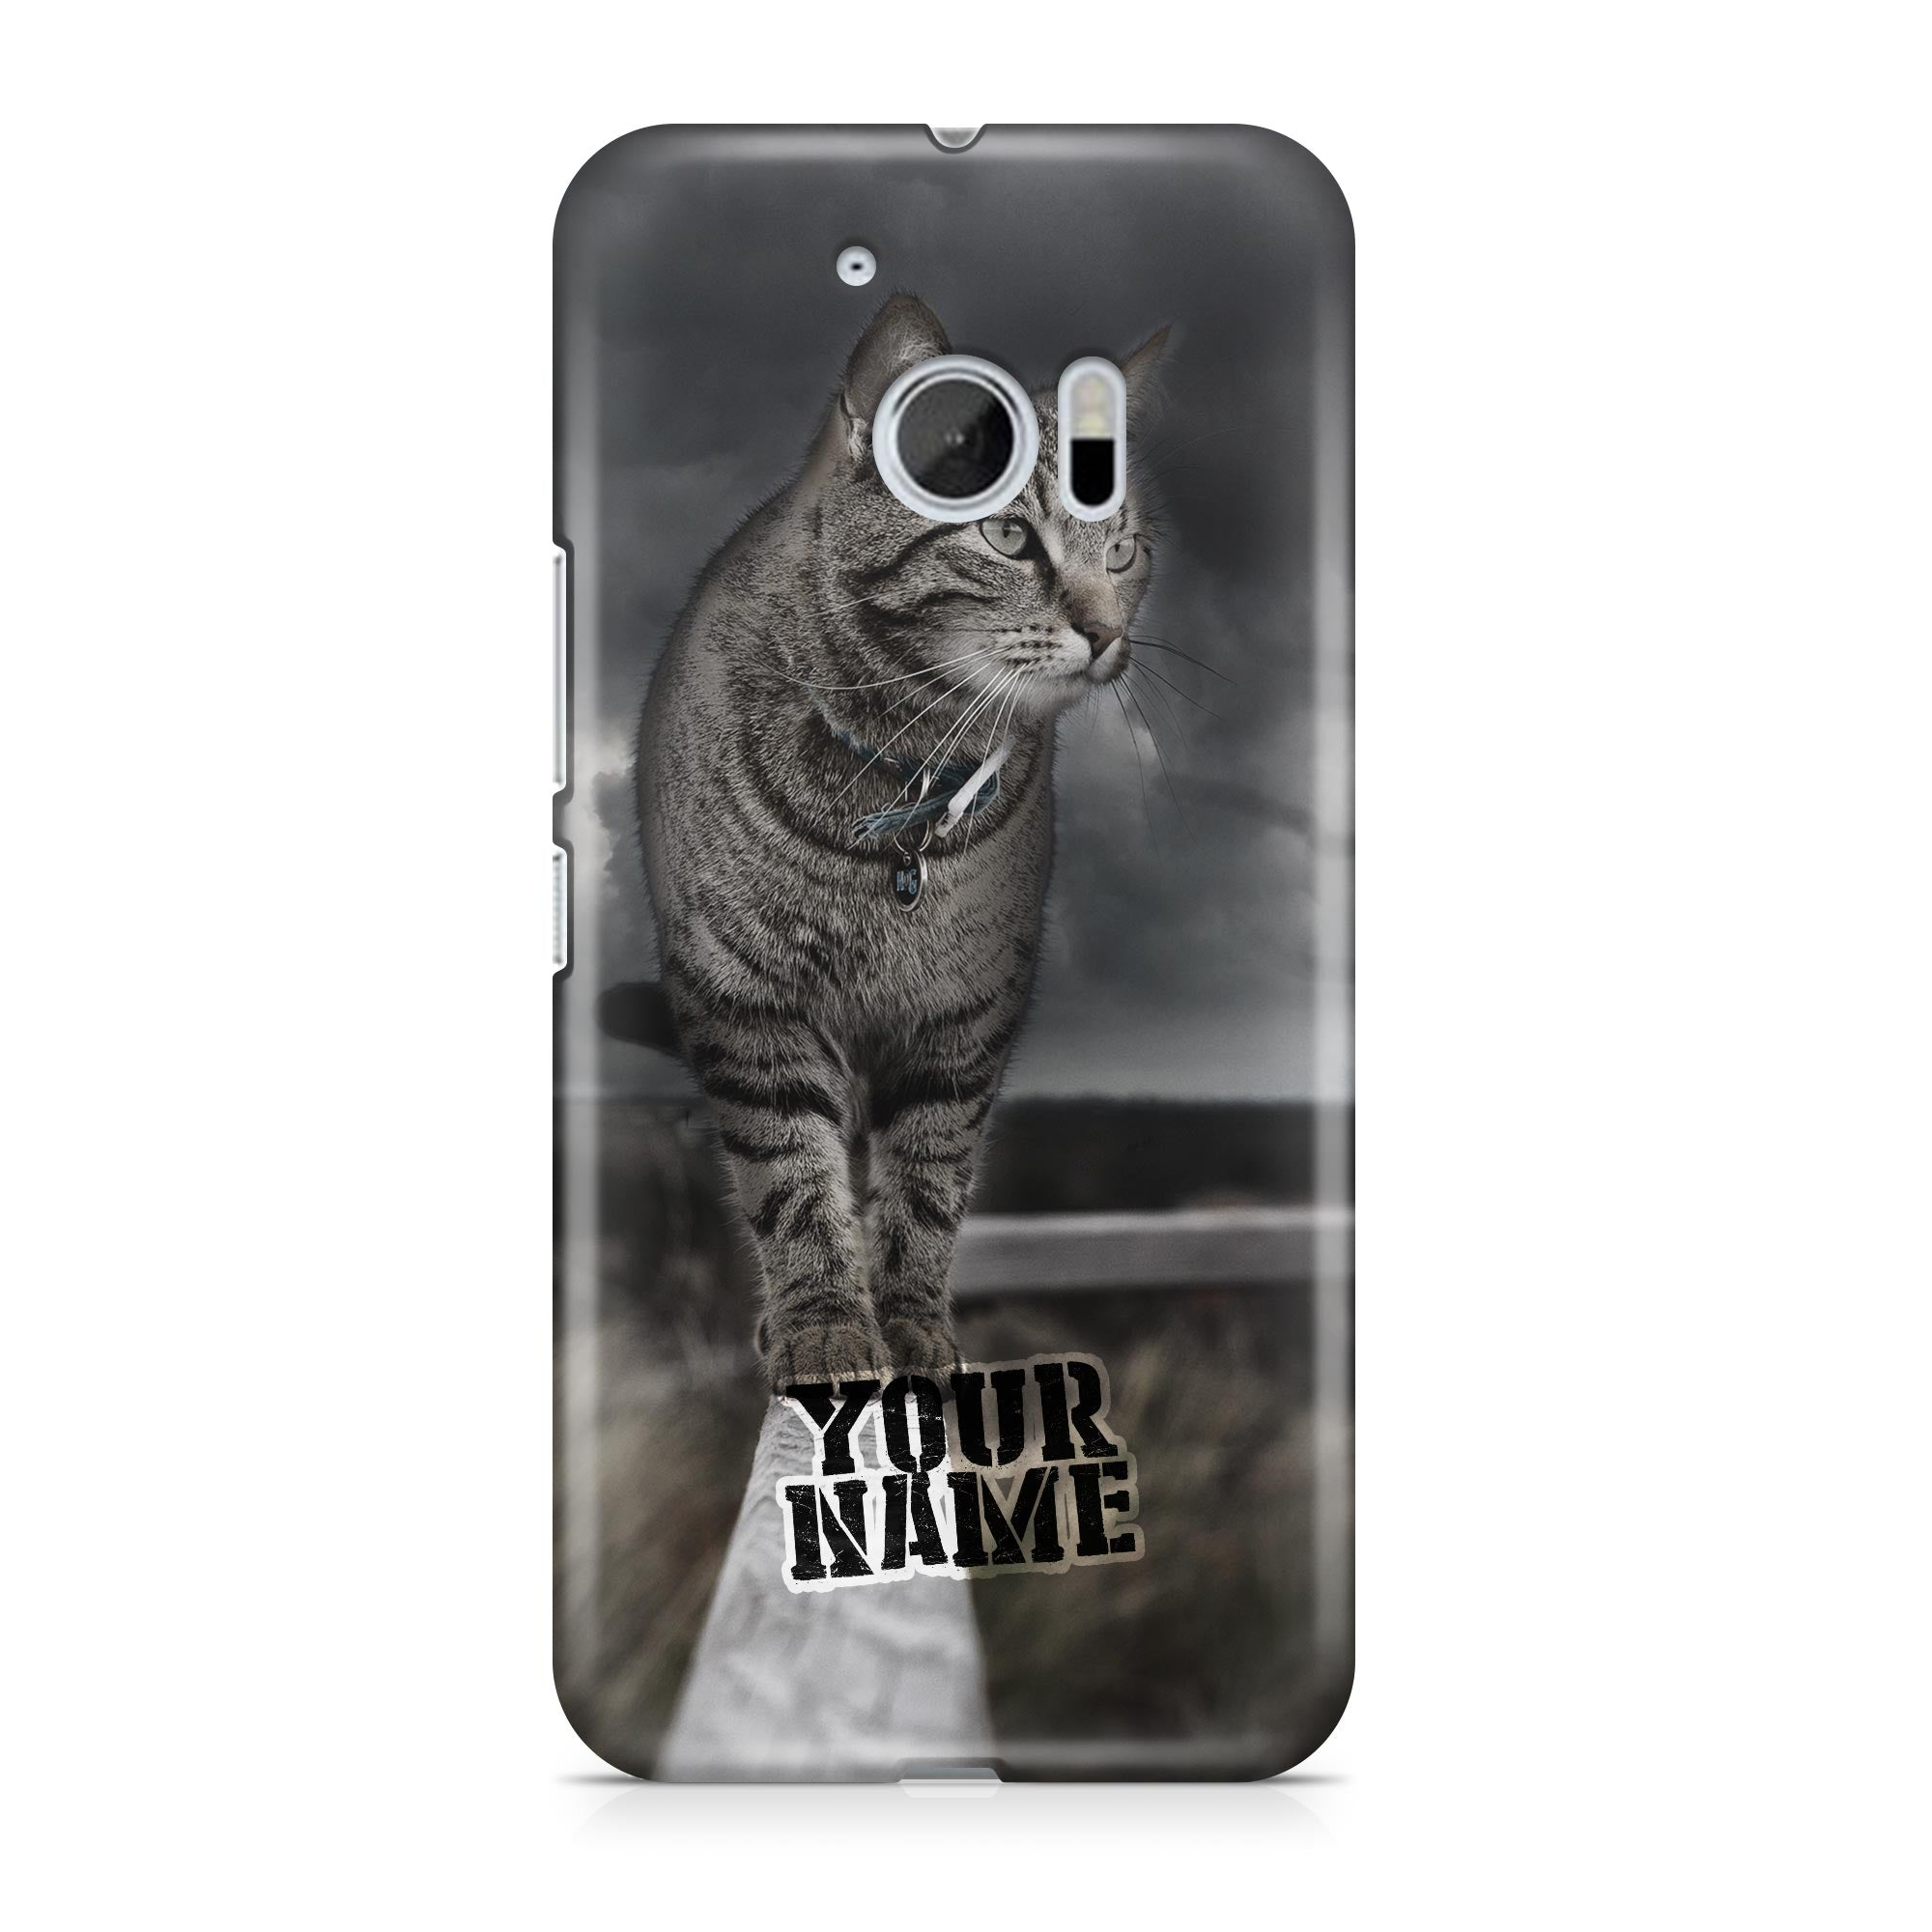 Grey Kitten Cats Darkness Cloud Art Phone Cases Cover